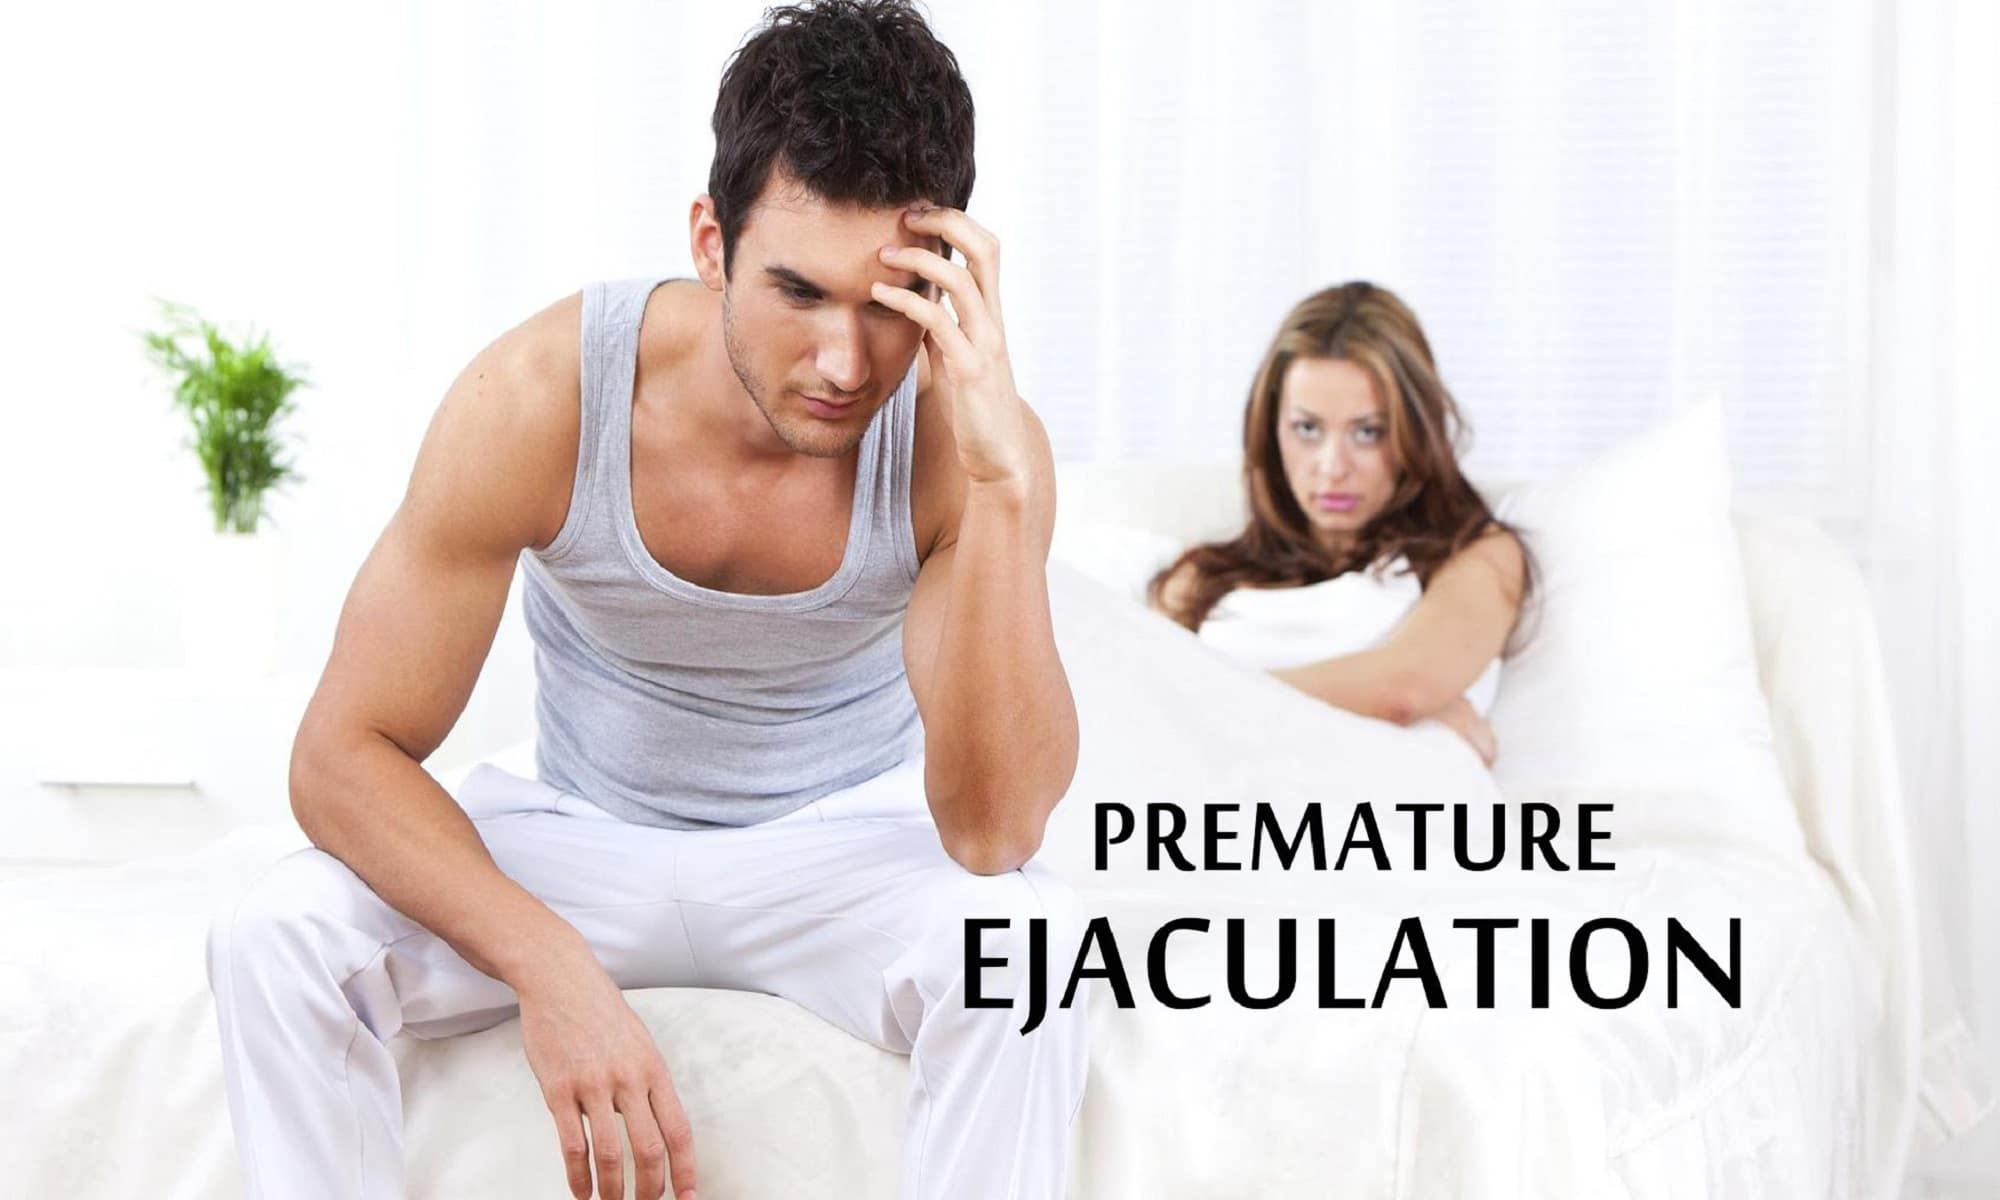 What is Premature Ejaculation (PE)?